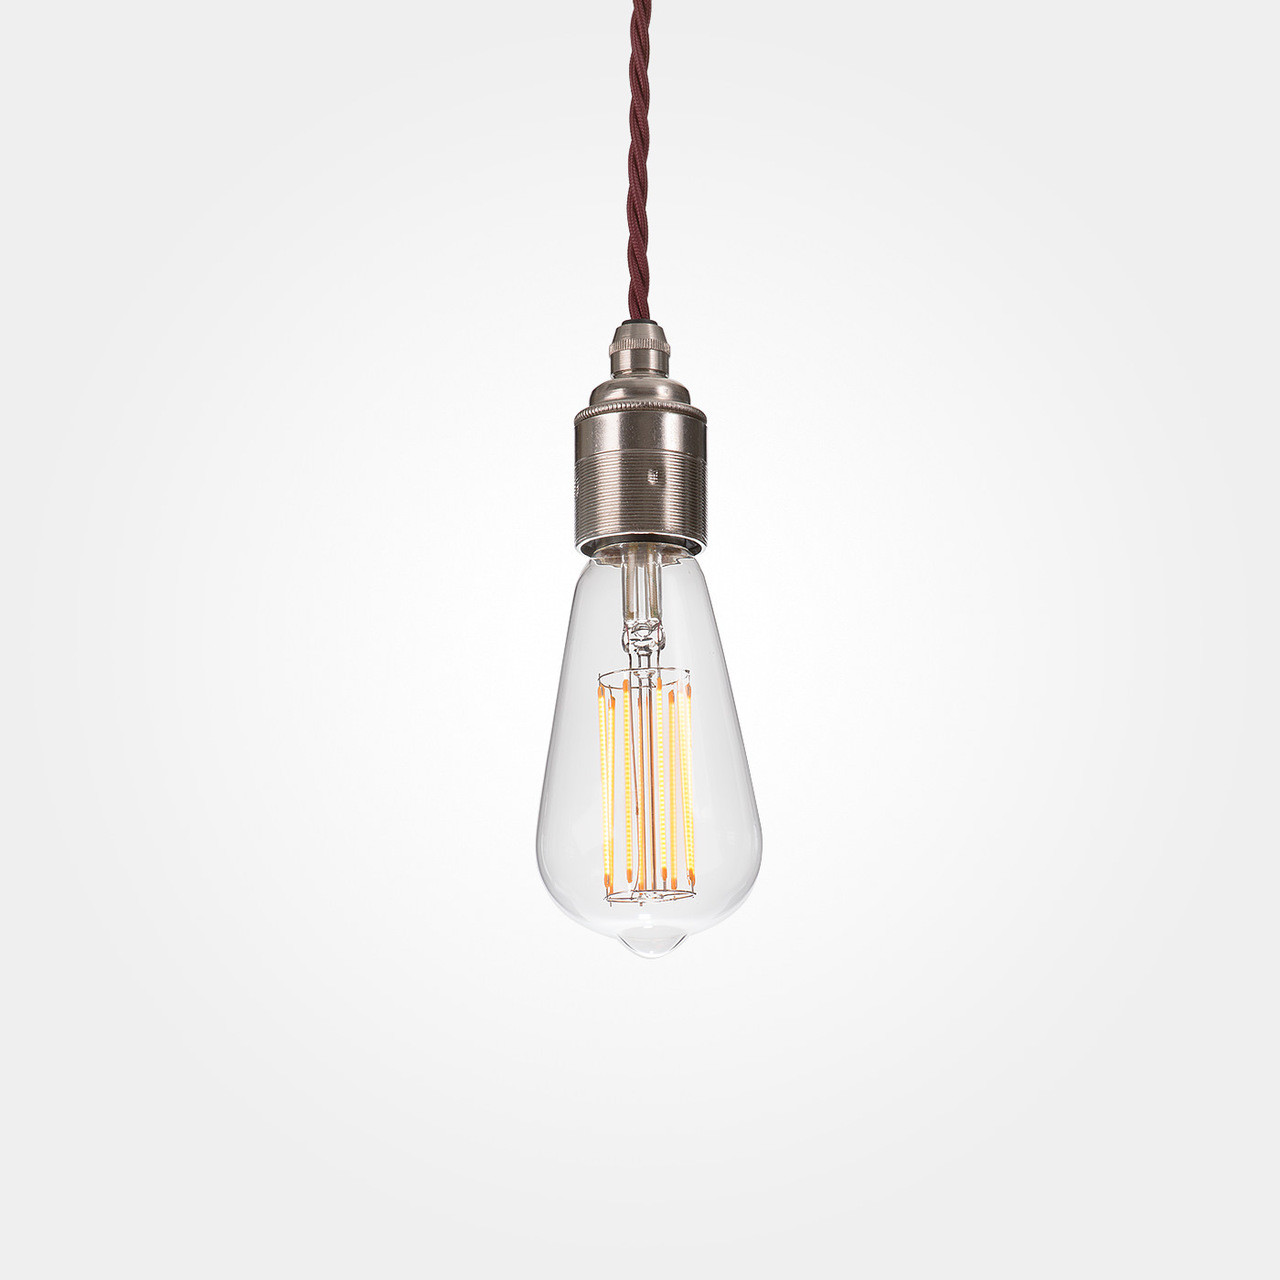 ceiling canada decomust industrial sputnik lights race space orbit com table edison filament light lamp bulb industrialceiling